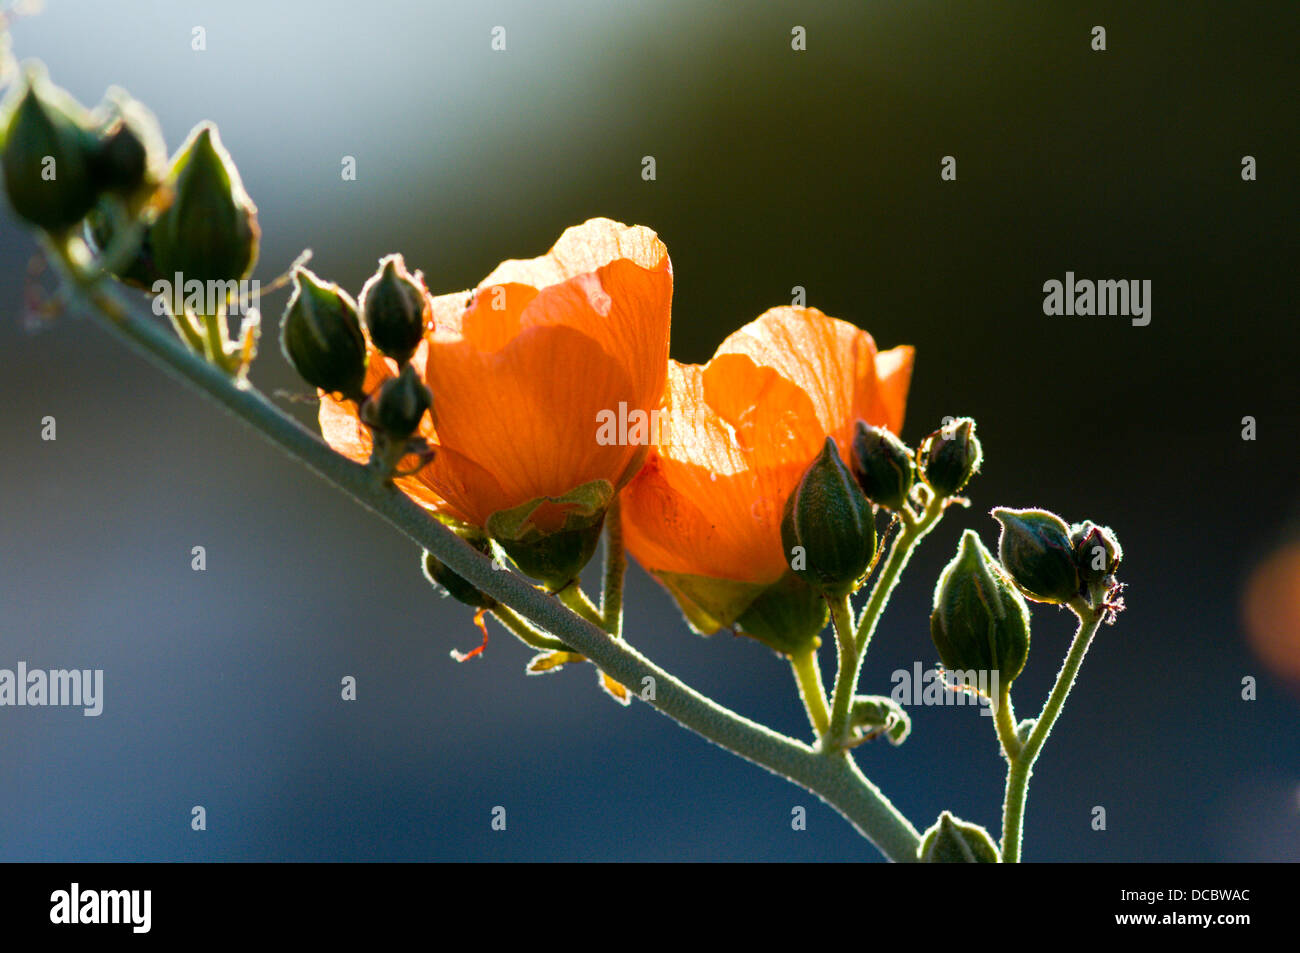 Orange flowers of desert mallow close-up and backlit. - Stock Image